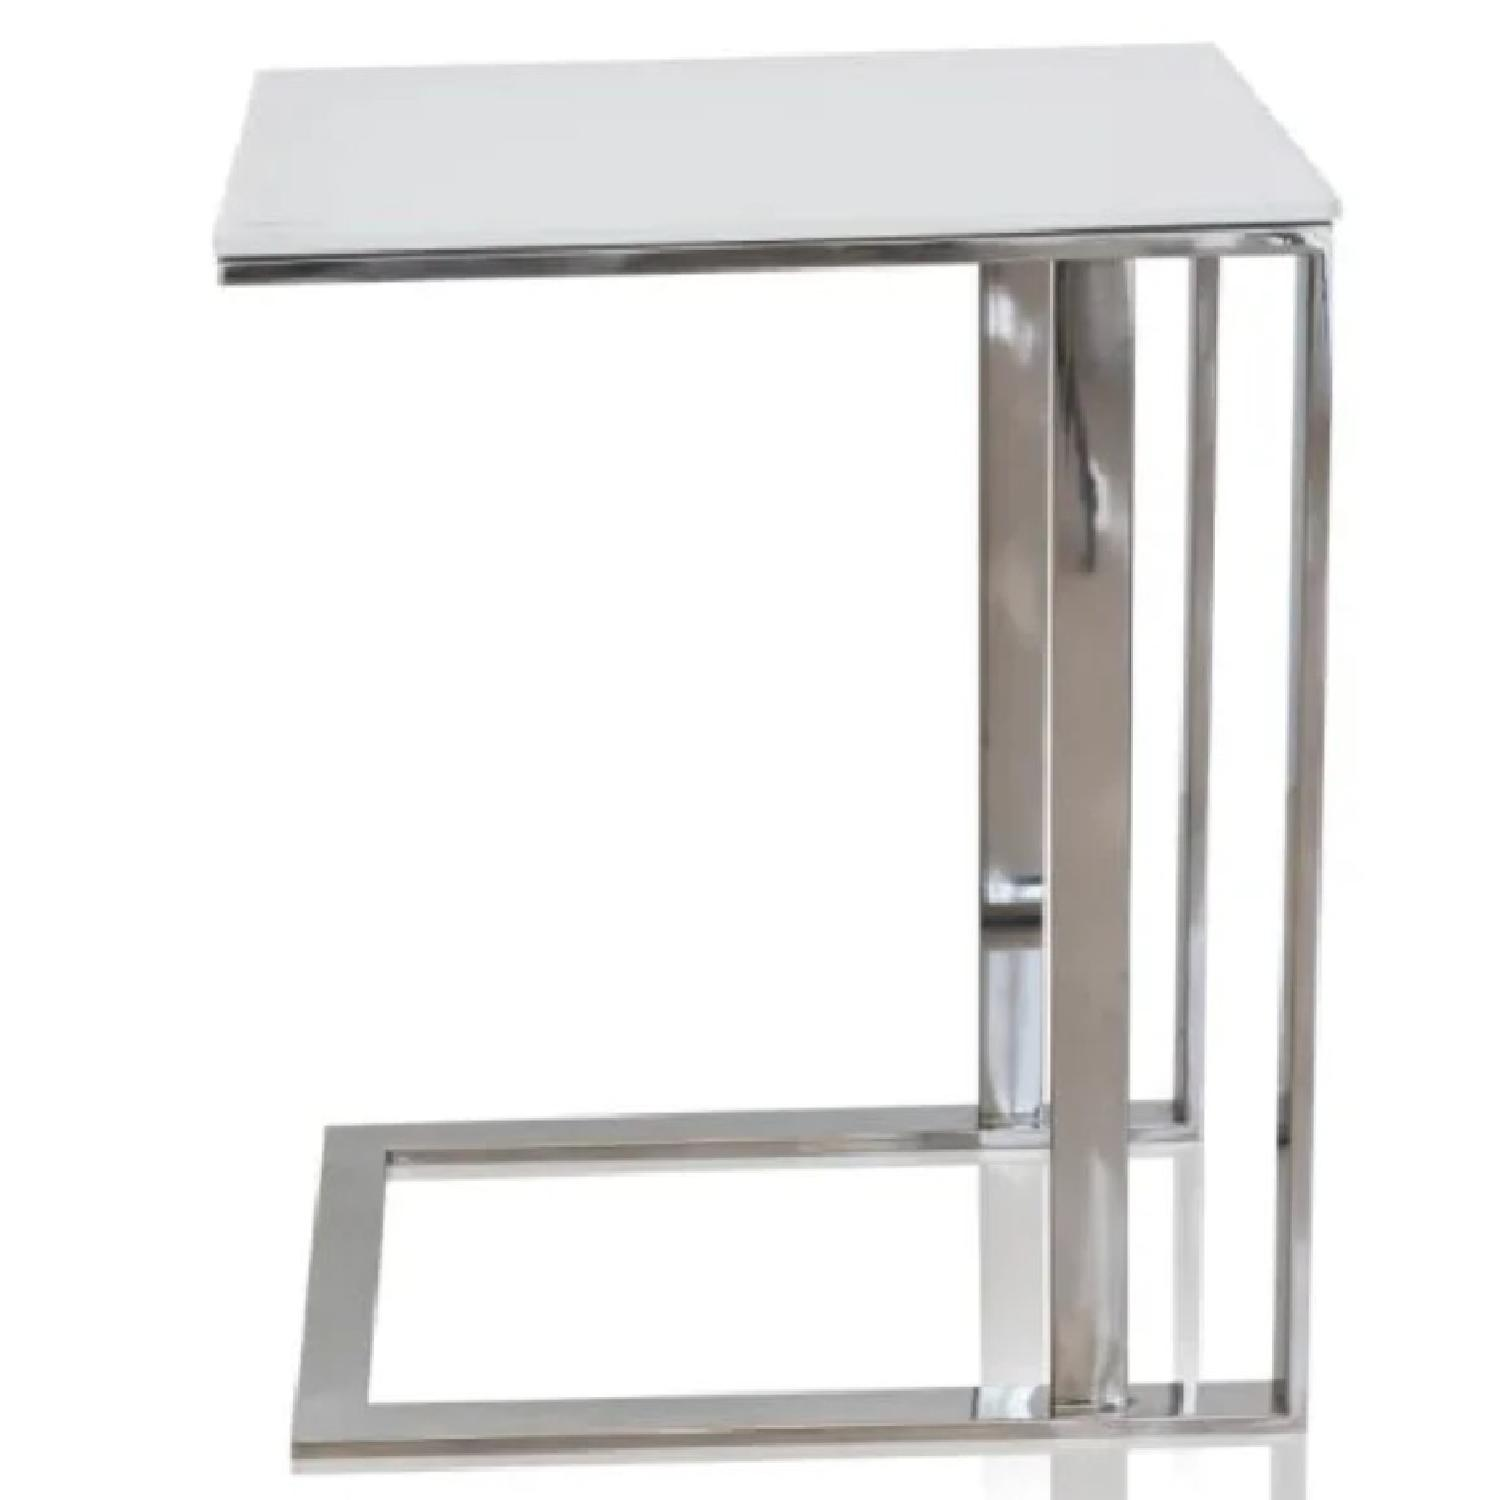 Modani Khloe White Side Tables